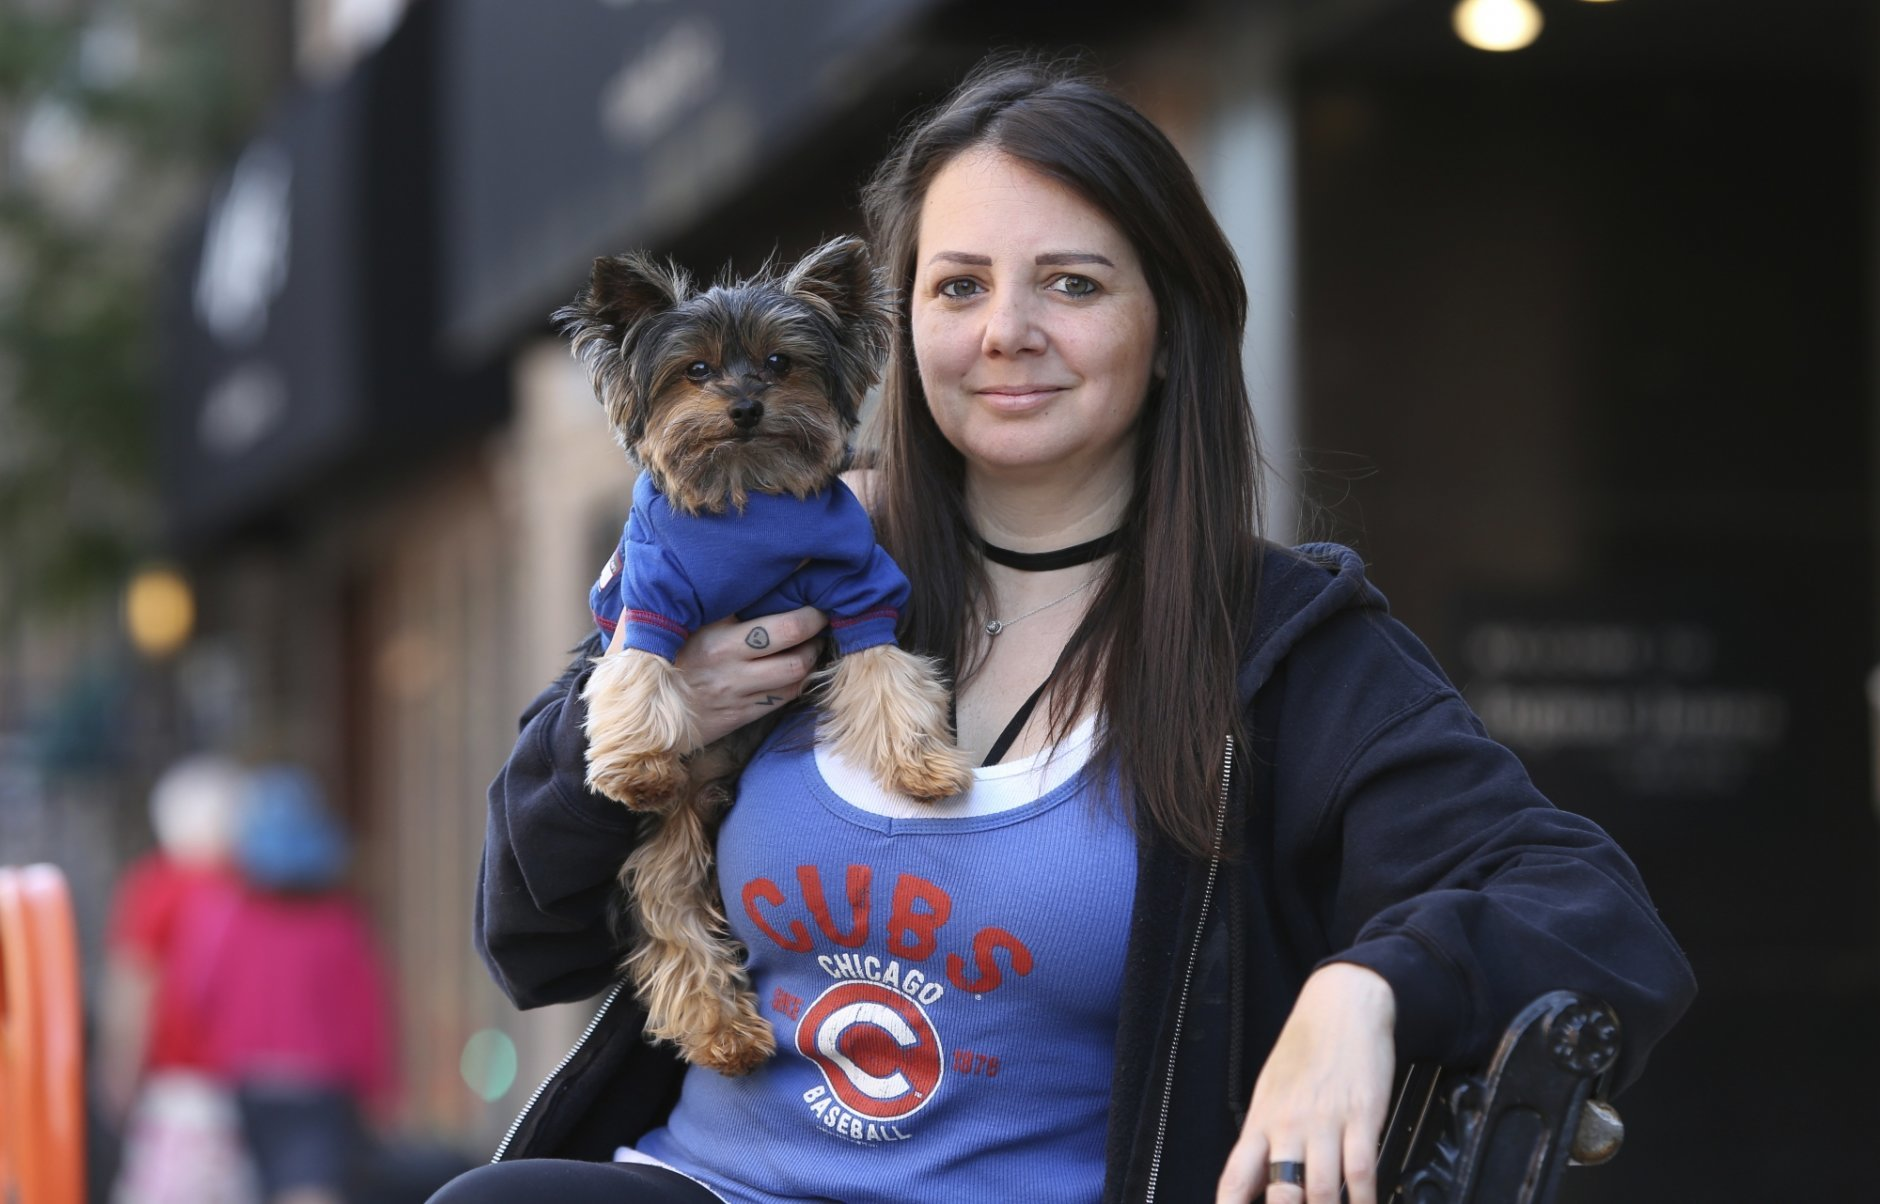 Lauren Pestikas holds her dog Sambuca in Chicago on Aug. 1, 2018. Since starting treatments with ketamine infusions, she says she feels much better for a few weeks after each session. Her monthly infusions last about 45 minutes and cost $550 each. Pestikas struggled with depression and anxiety and made several suicide attempts before starting ketamine treatments earlier in the year. (AP Photo/Teresa Crawford)